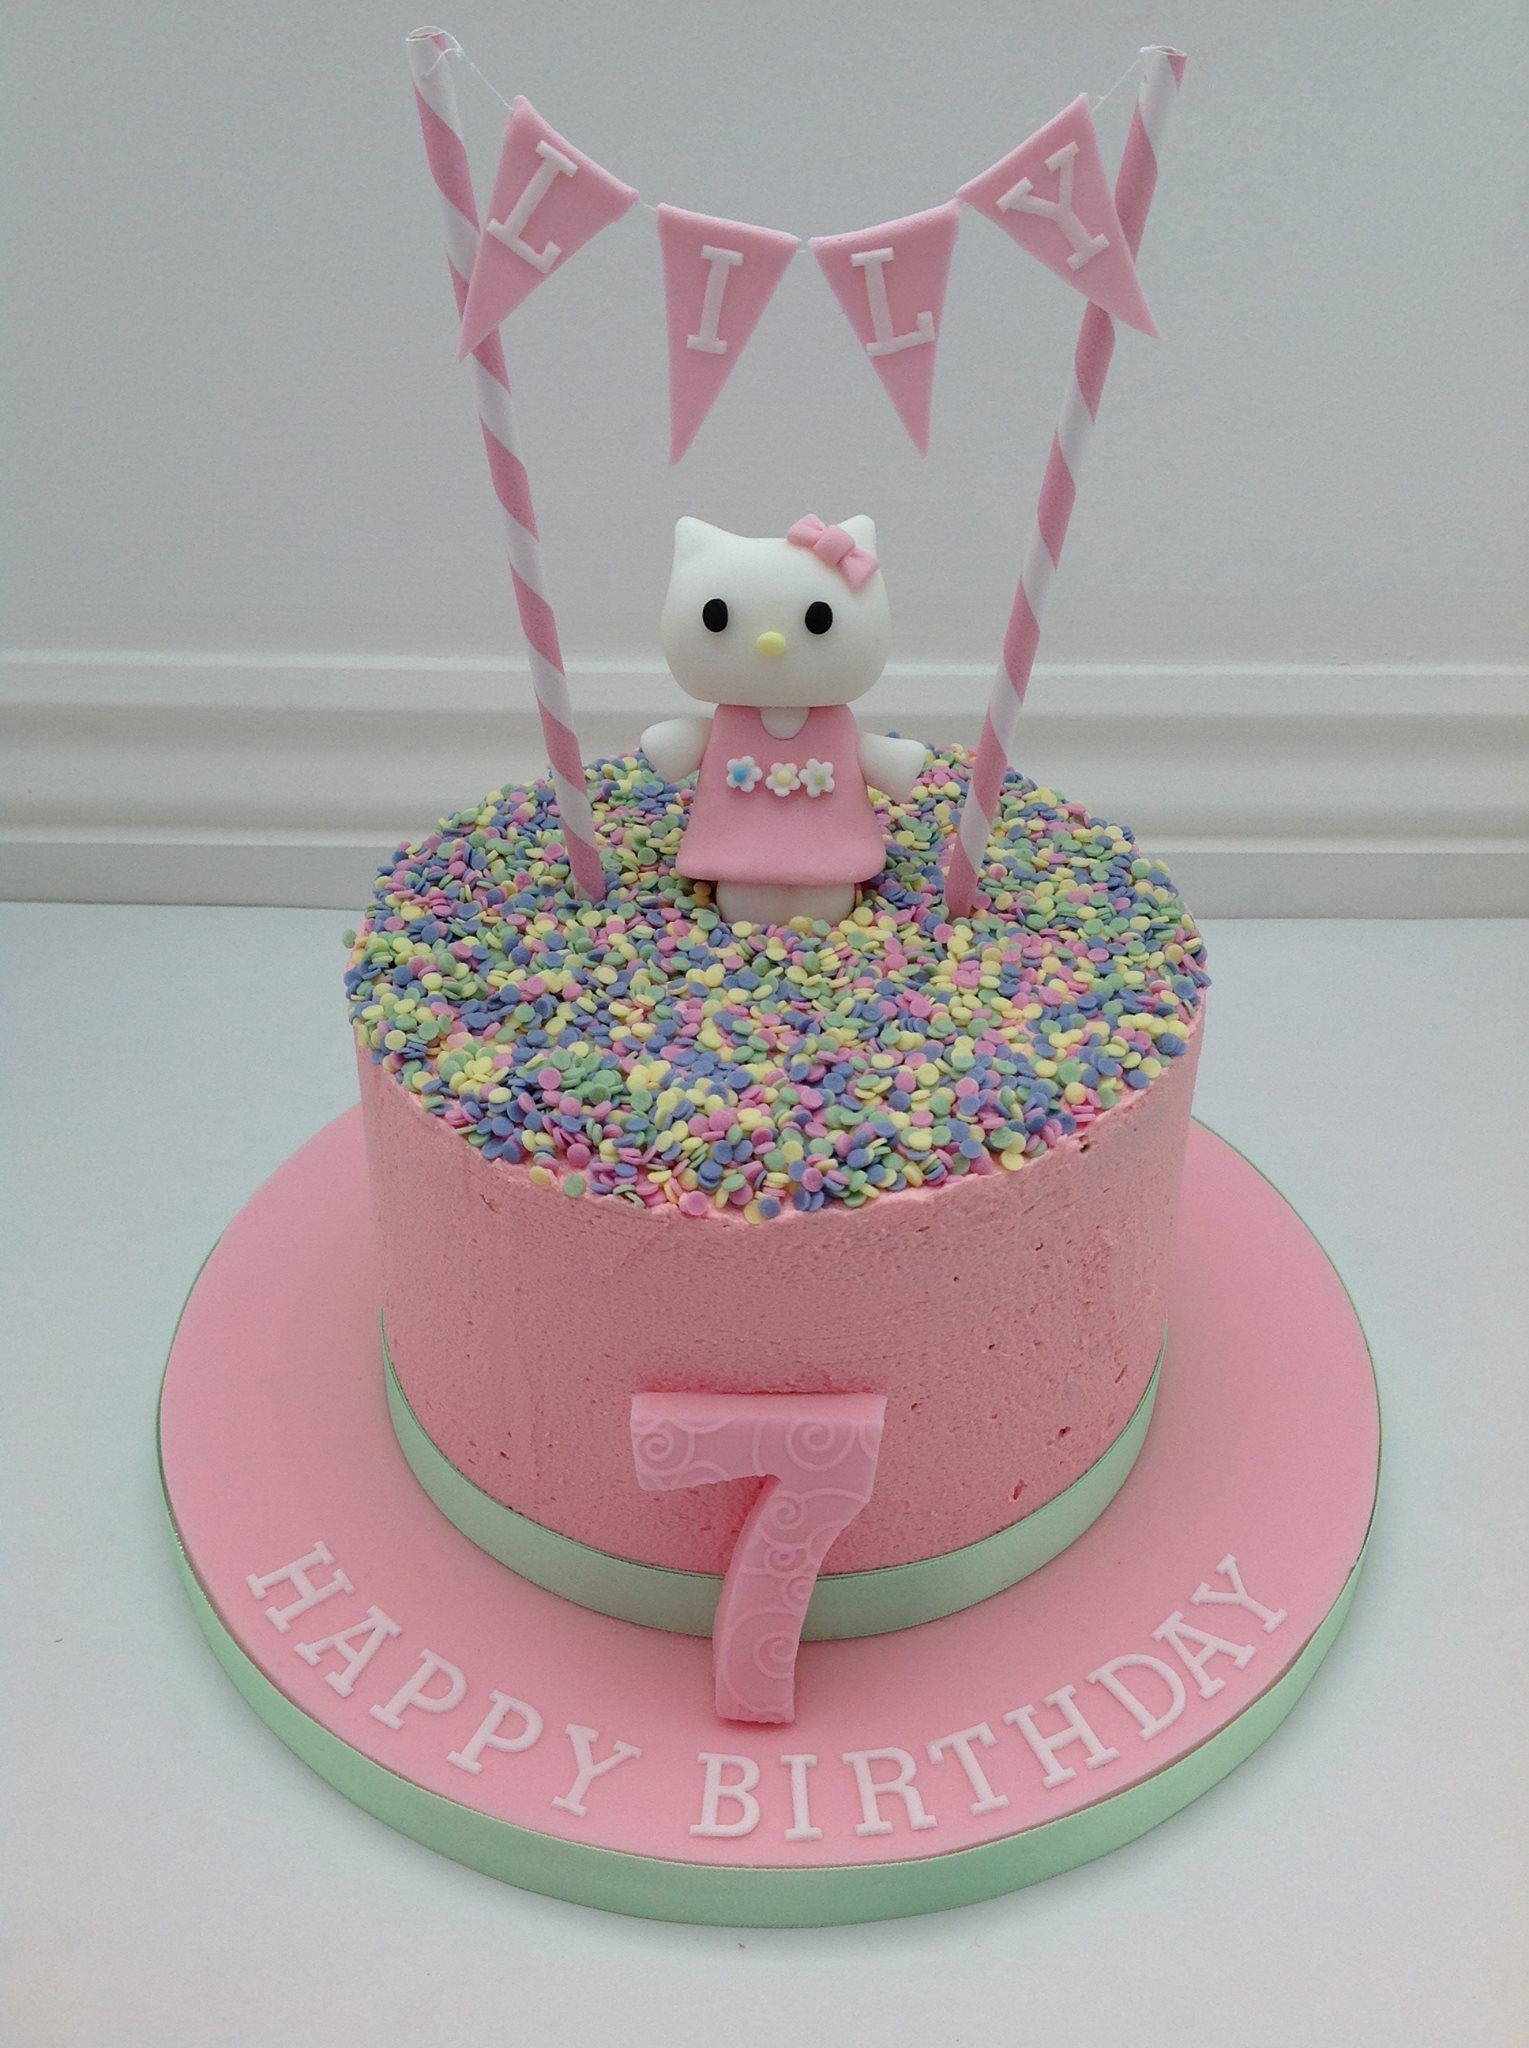 A Hello Kitty Buttercream Cake with Bunting by Fancy Fondant cake